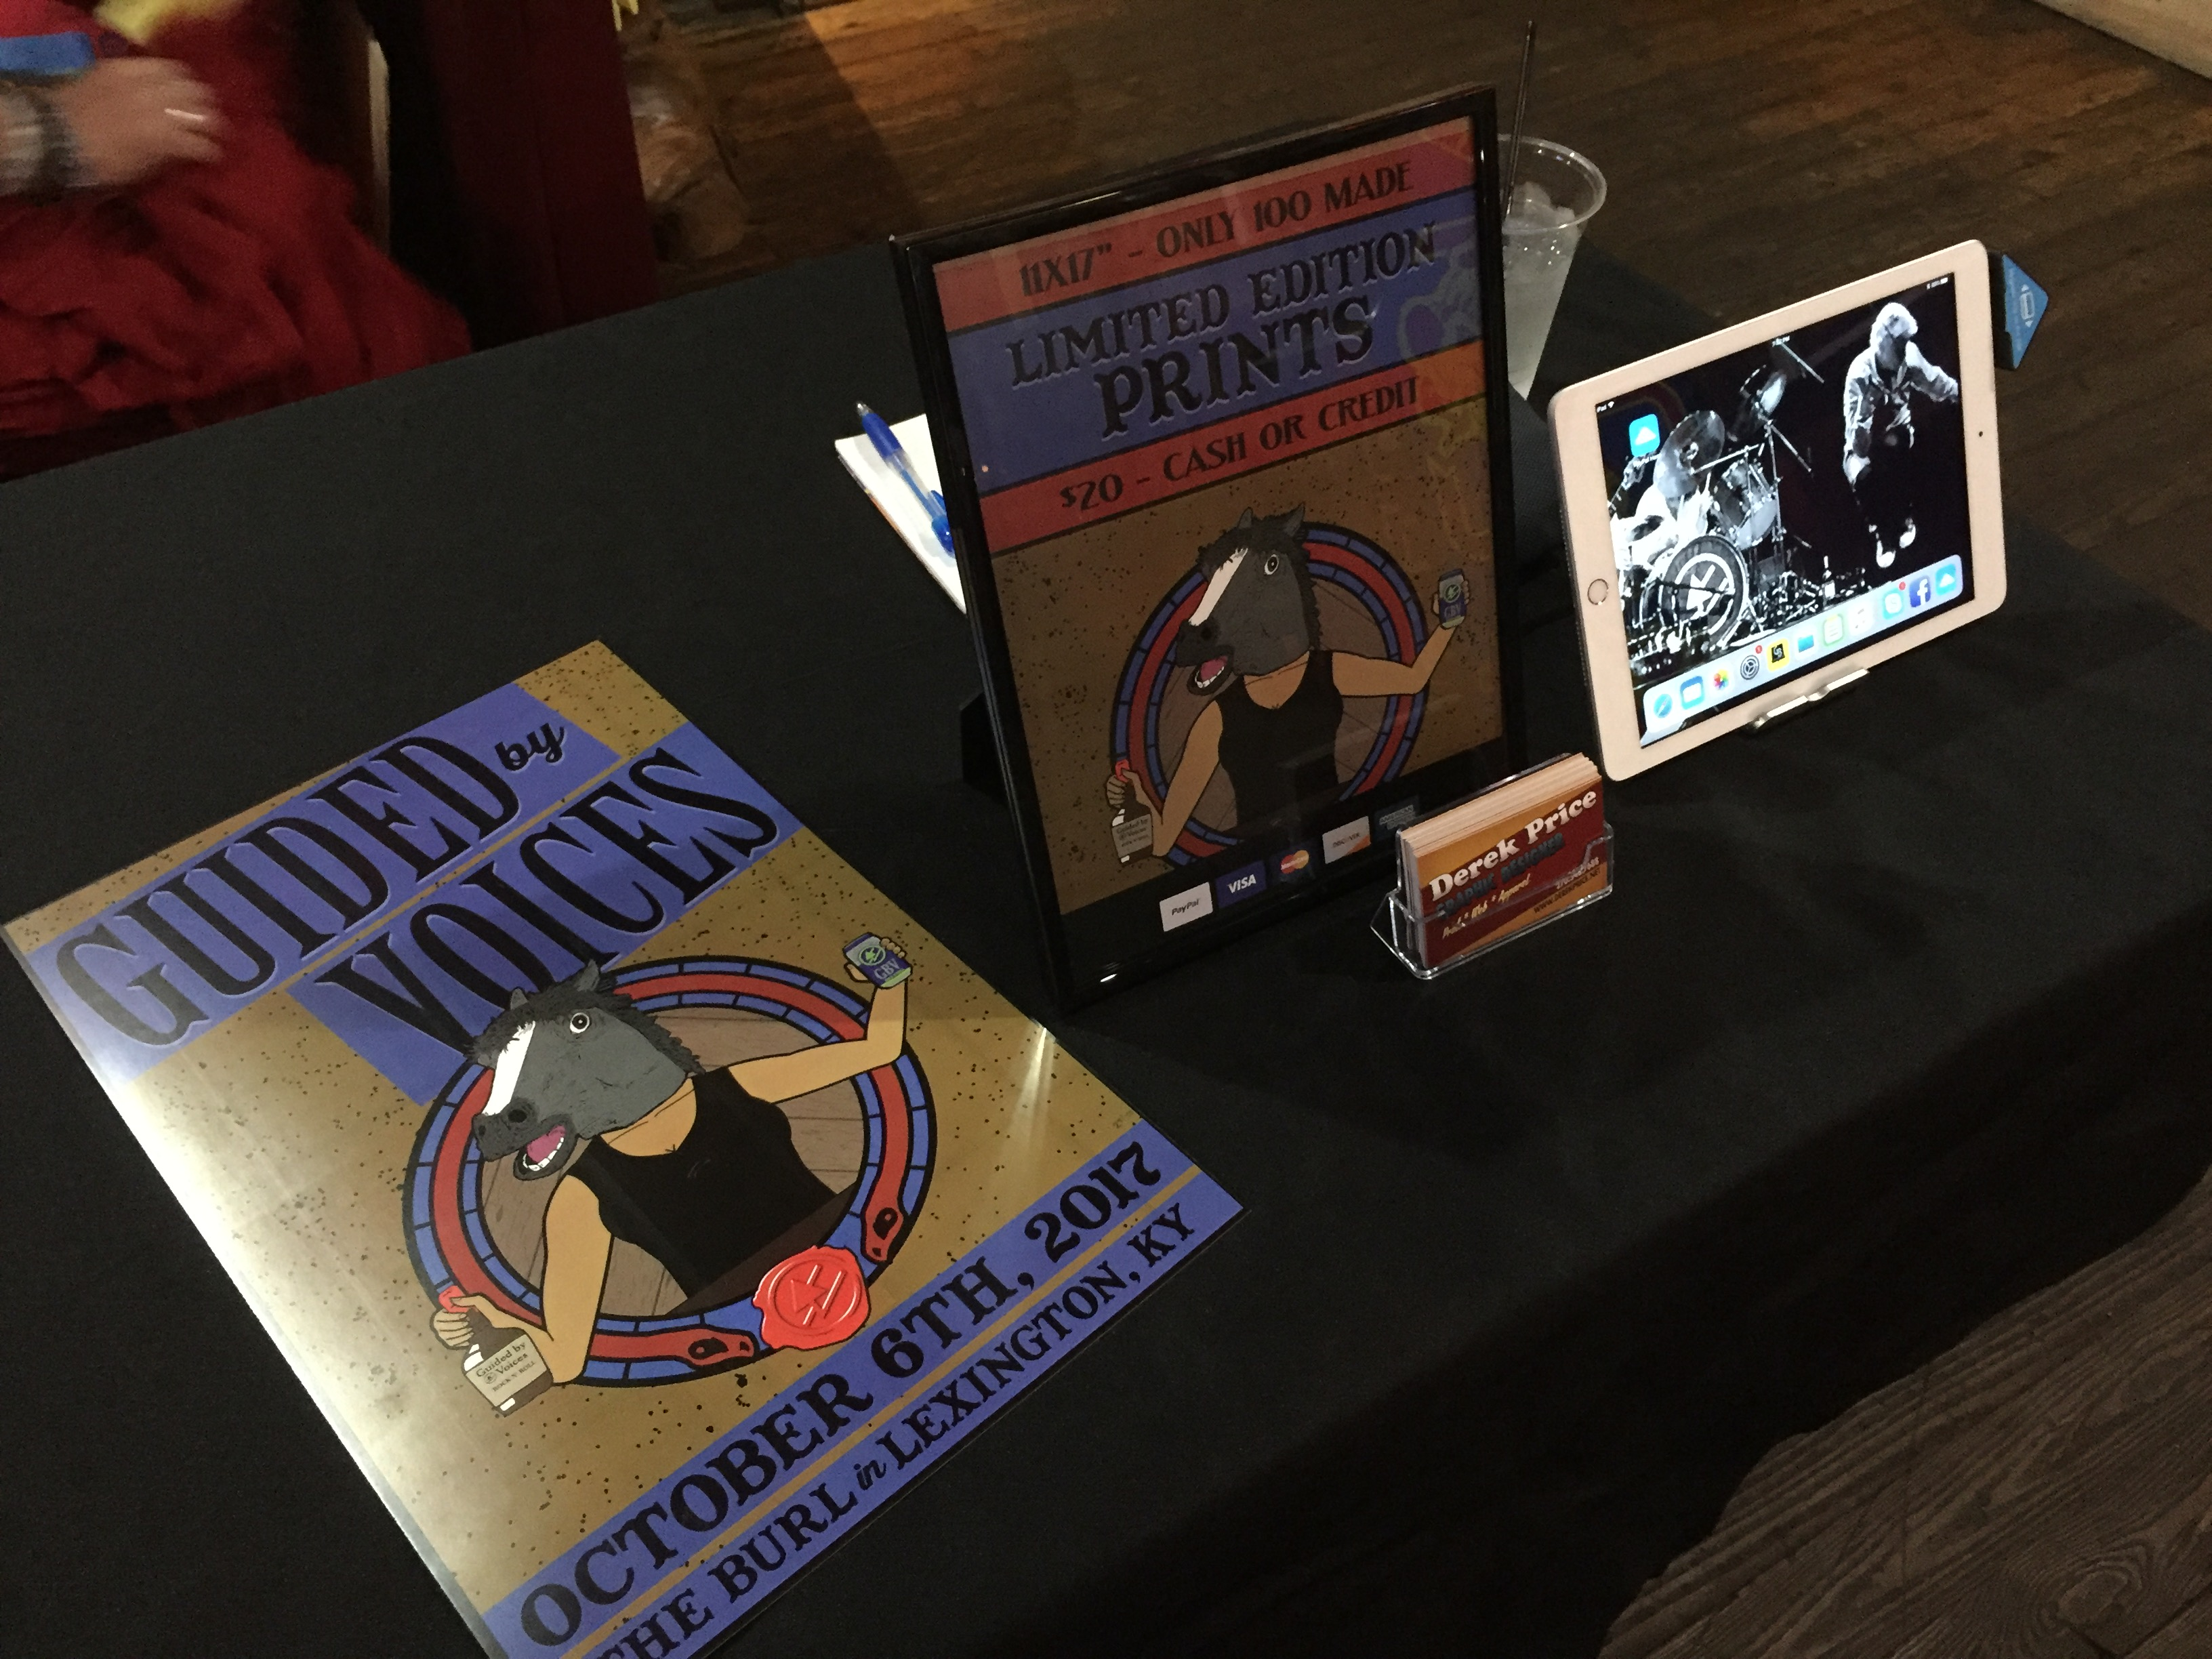 Set up to sell at Guided by Voices' merch table